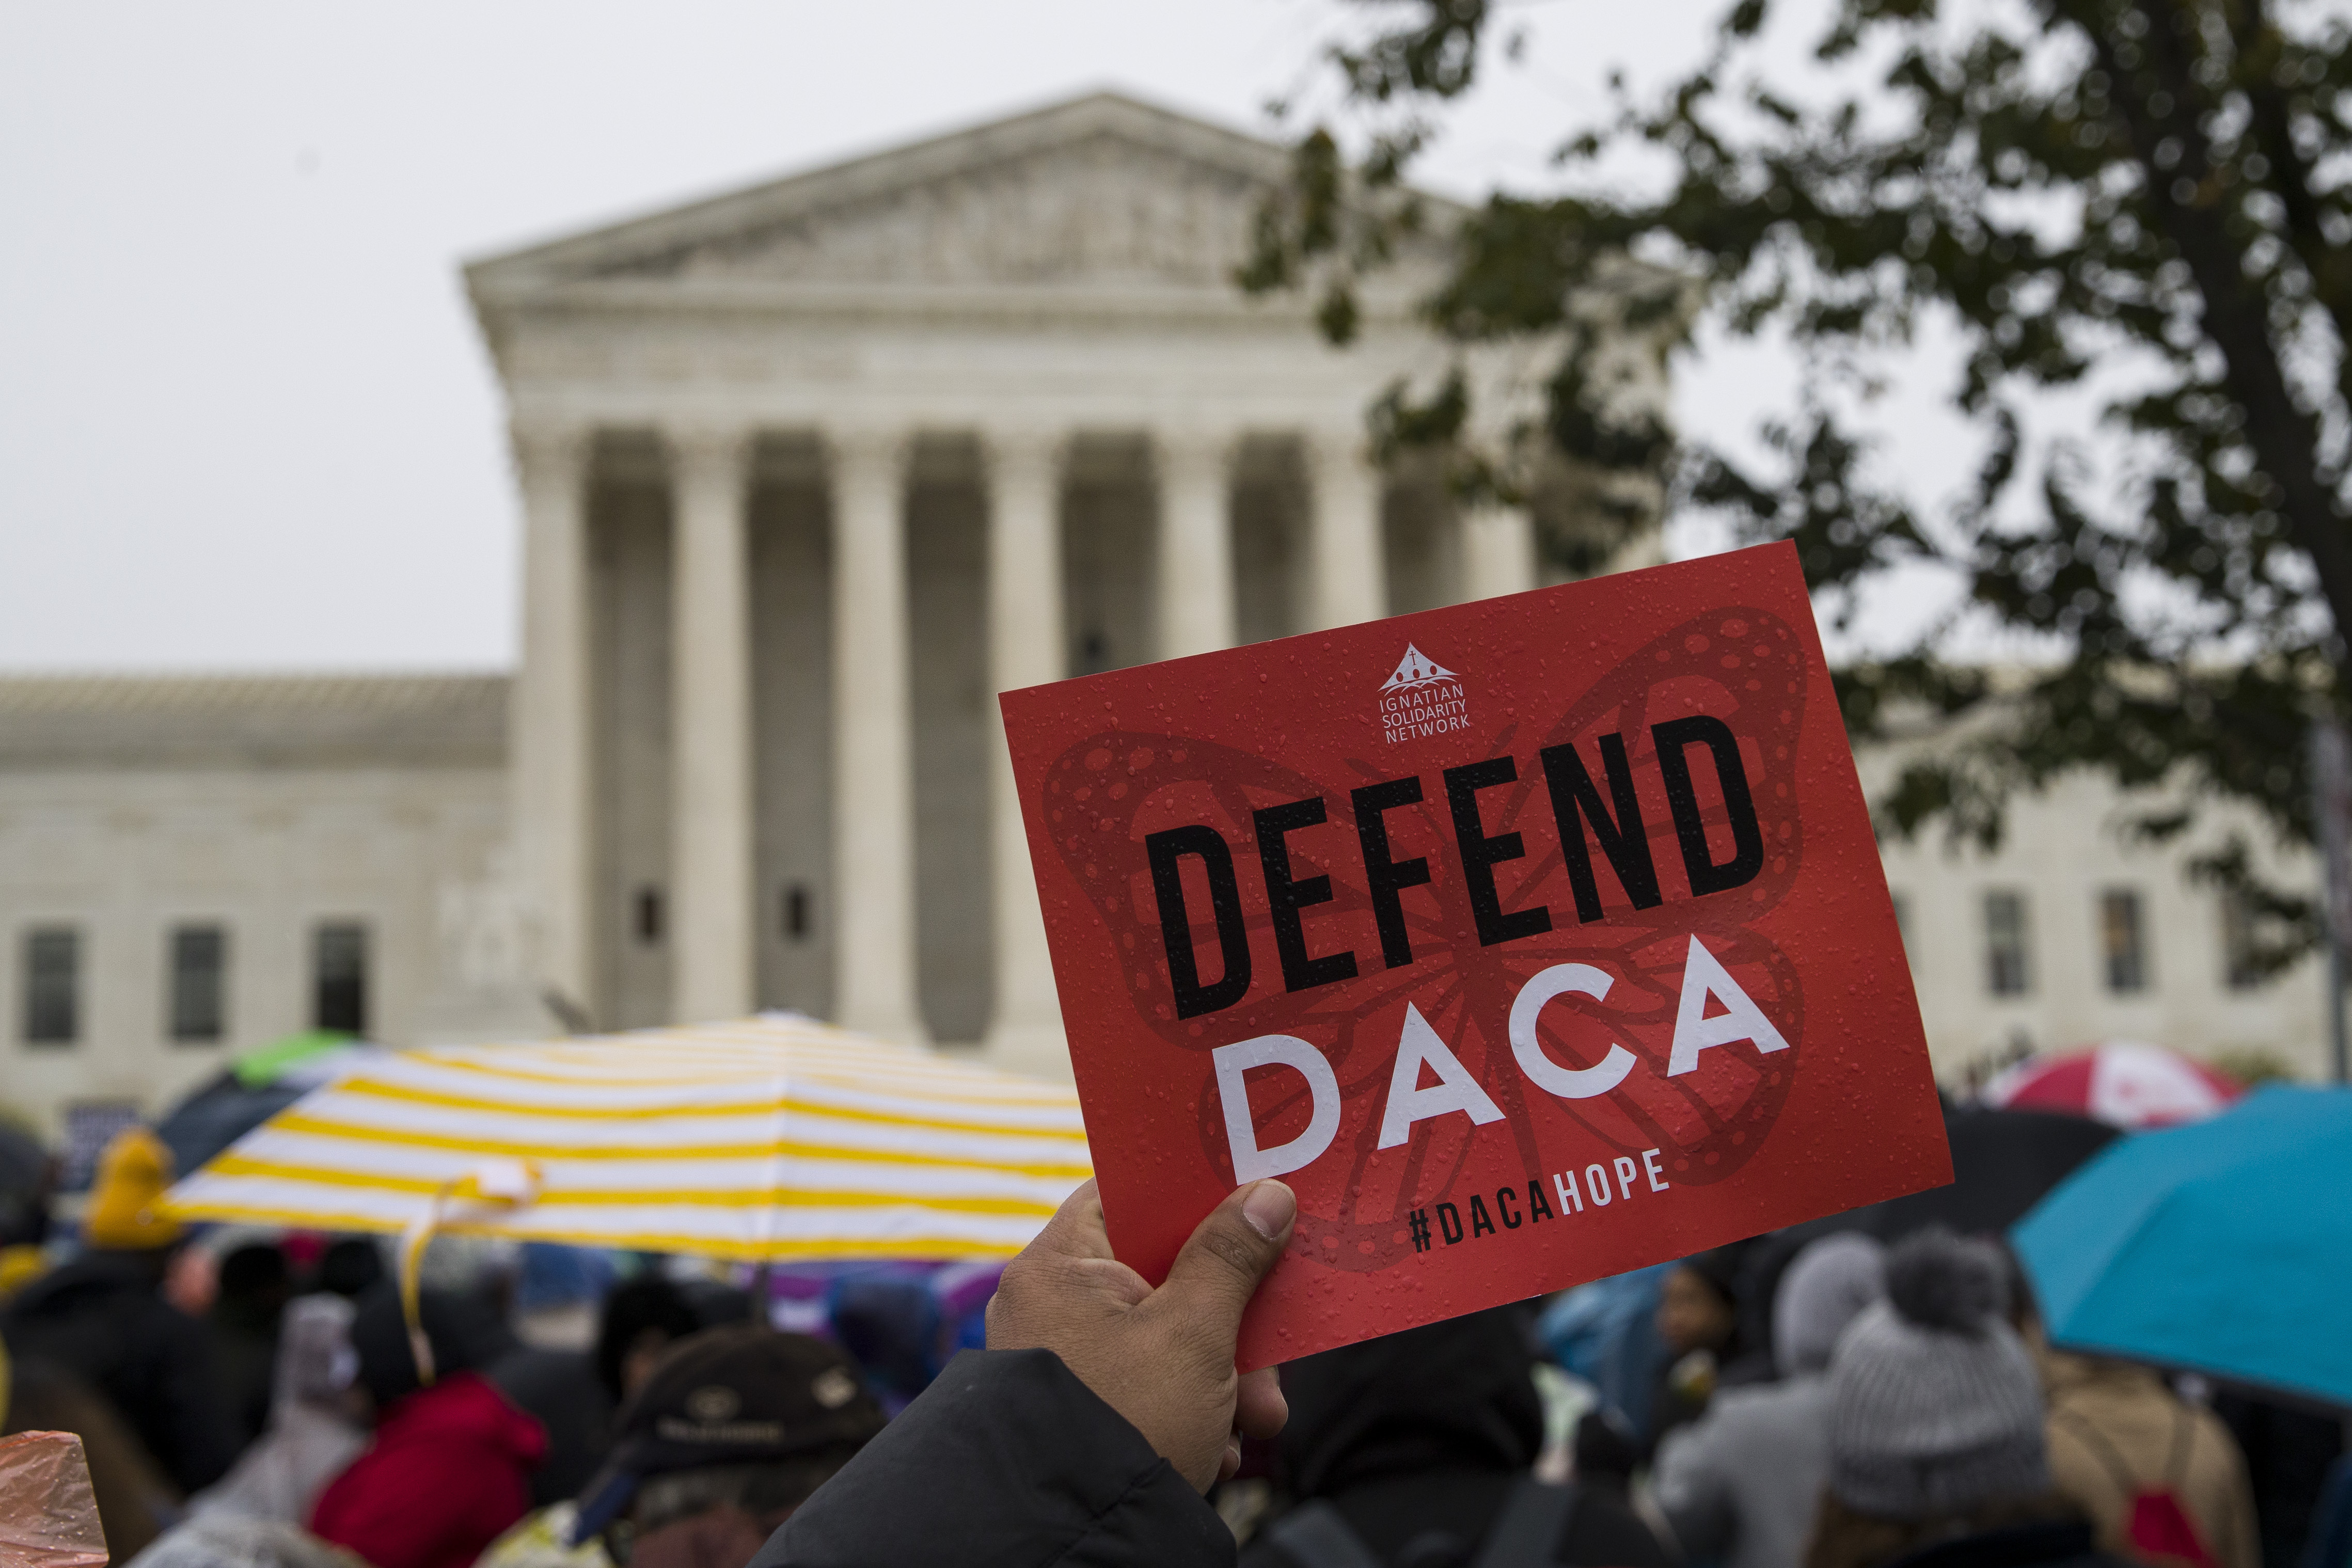 EDITORIAL: Why the Supreme Court should strike down DACA